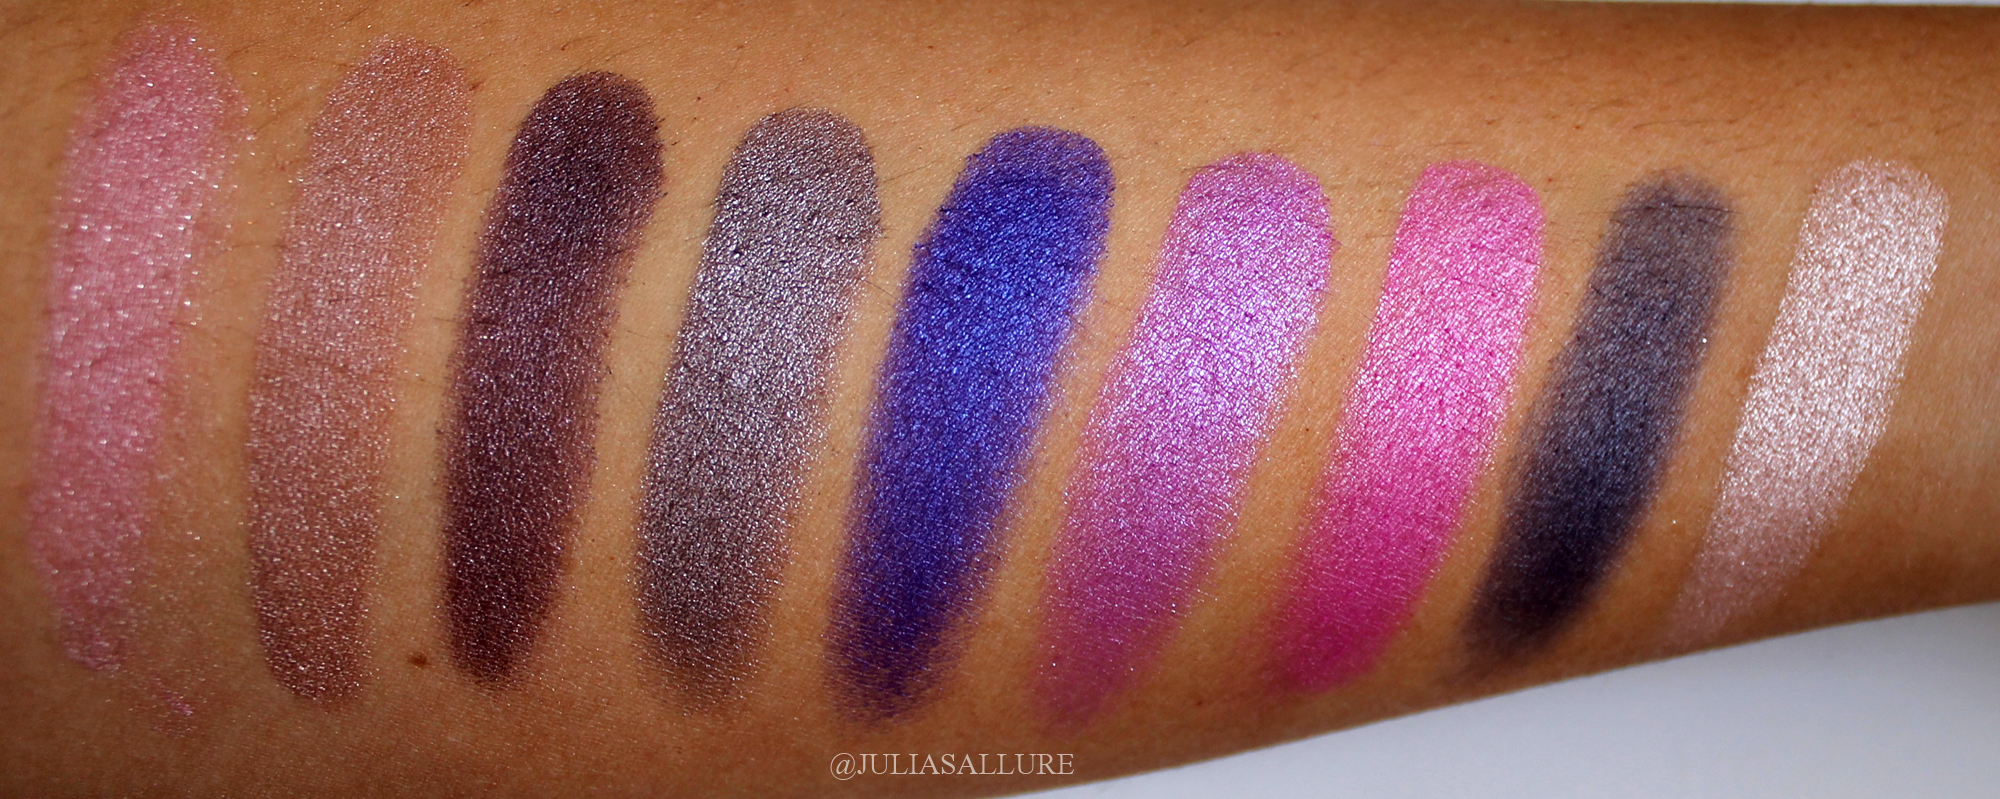 Wild & Free Baked Eyeshadow Palette by BH Cosmetics #20